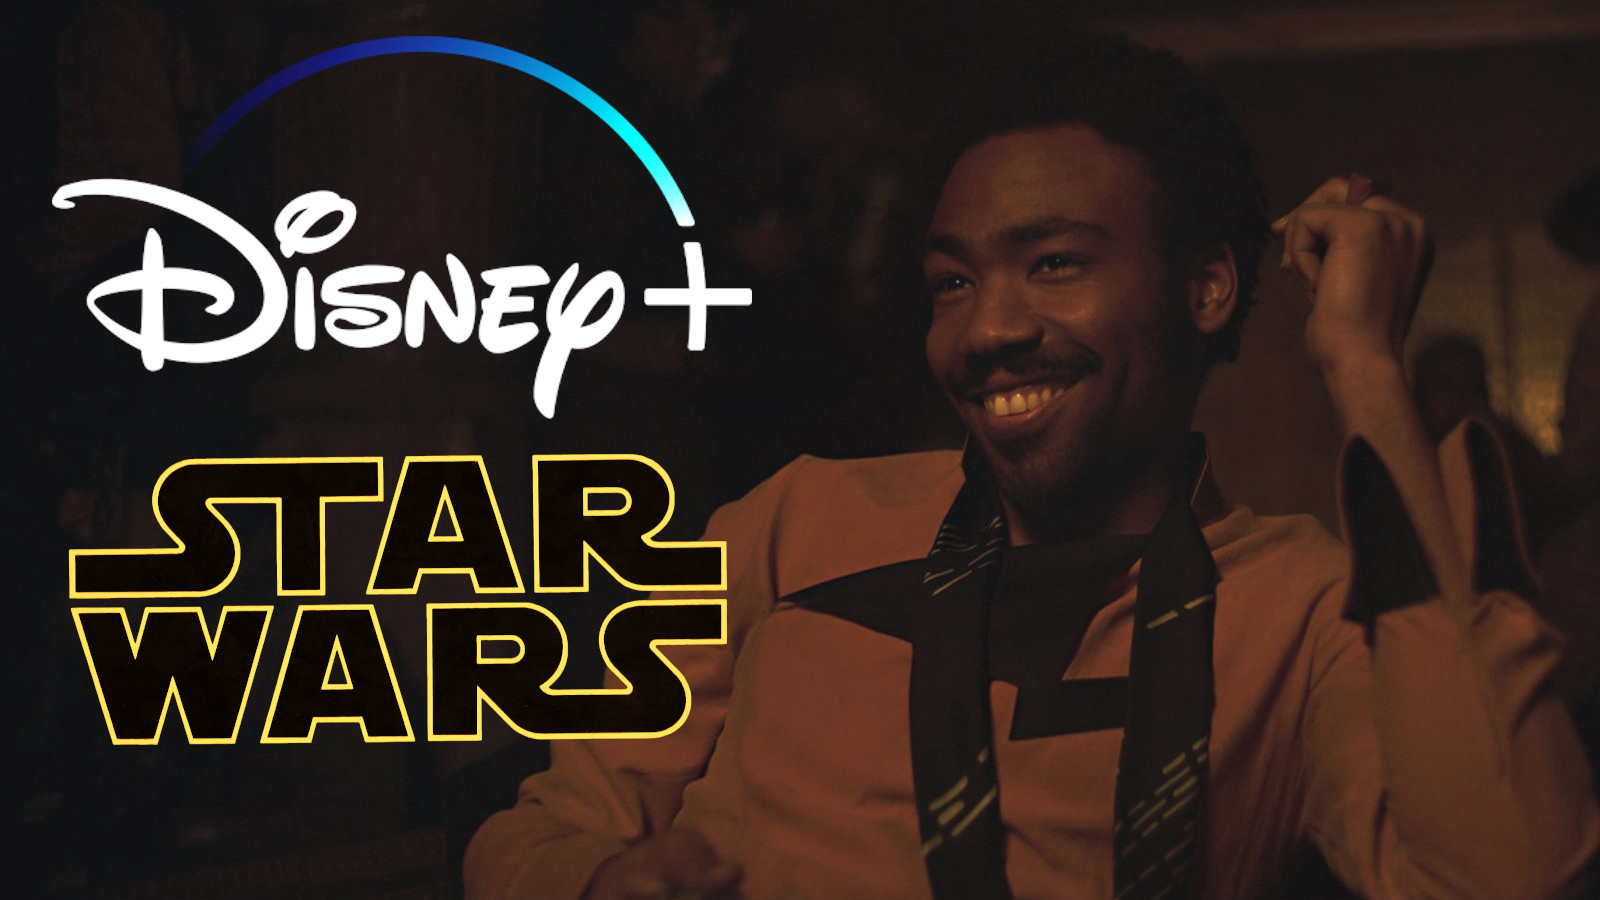 Donald Glover as Lando at a bar